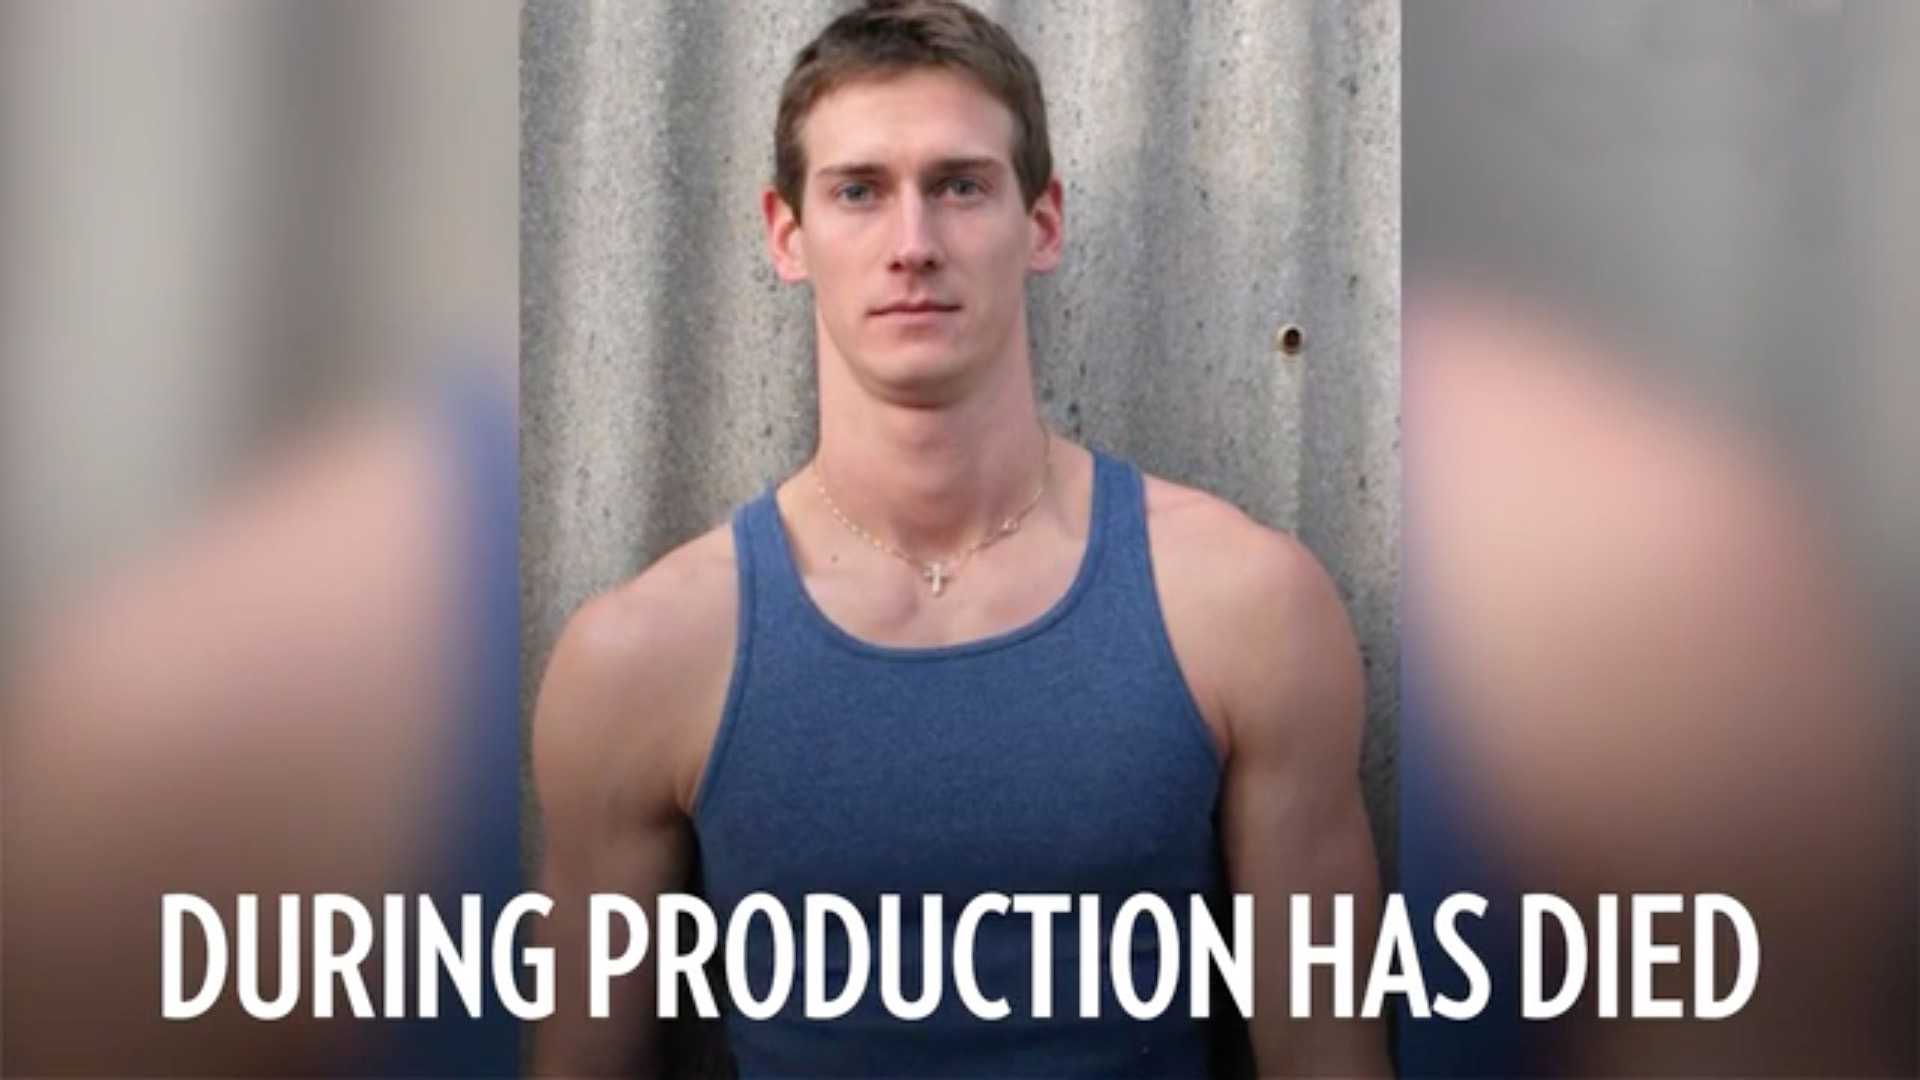 The Walking Dead Stuntman Who Suffered 'Serious Injuries' During Production Is Dead